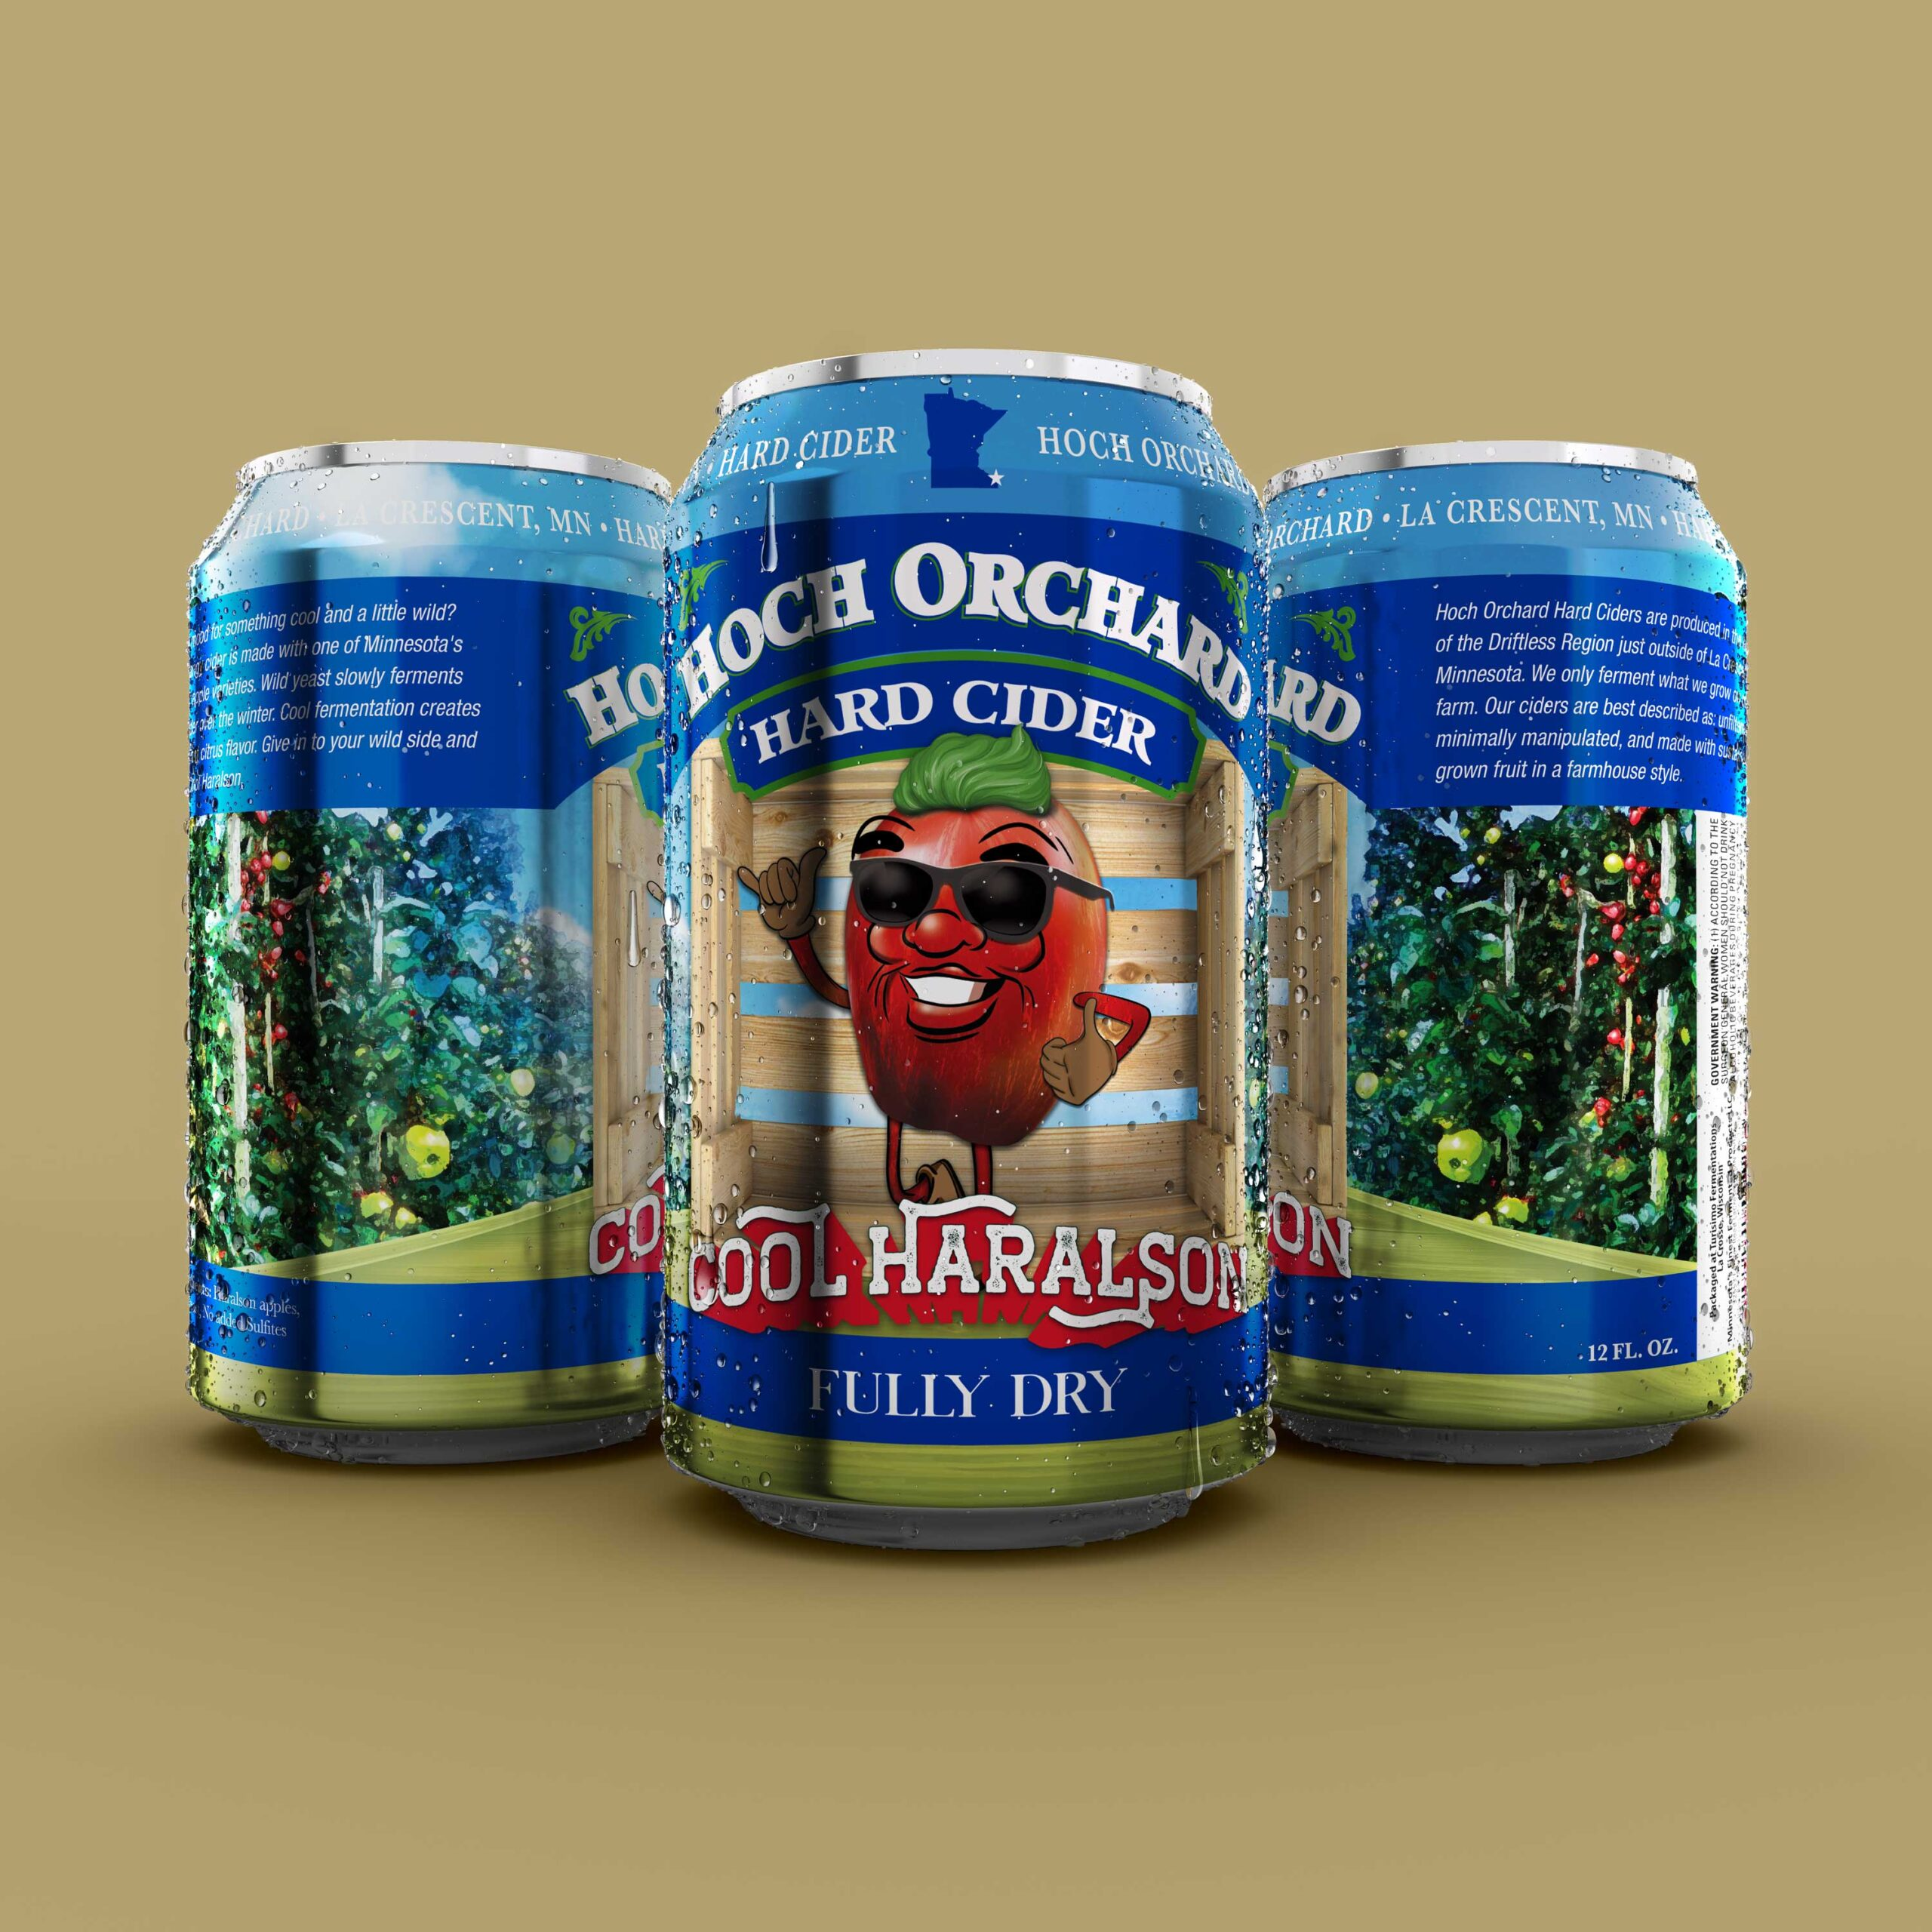 Turisimo Fermentations Releasing Hoch Orchards Cool Haralson Hard Cider in Cans